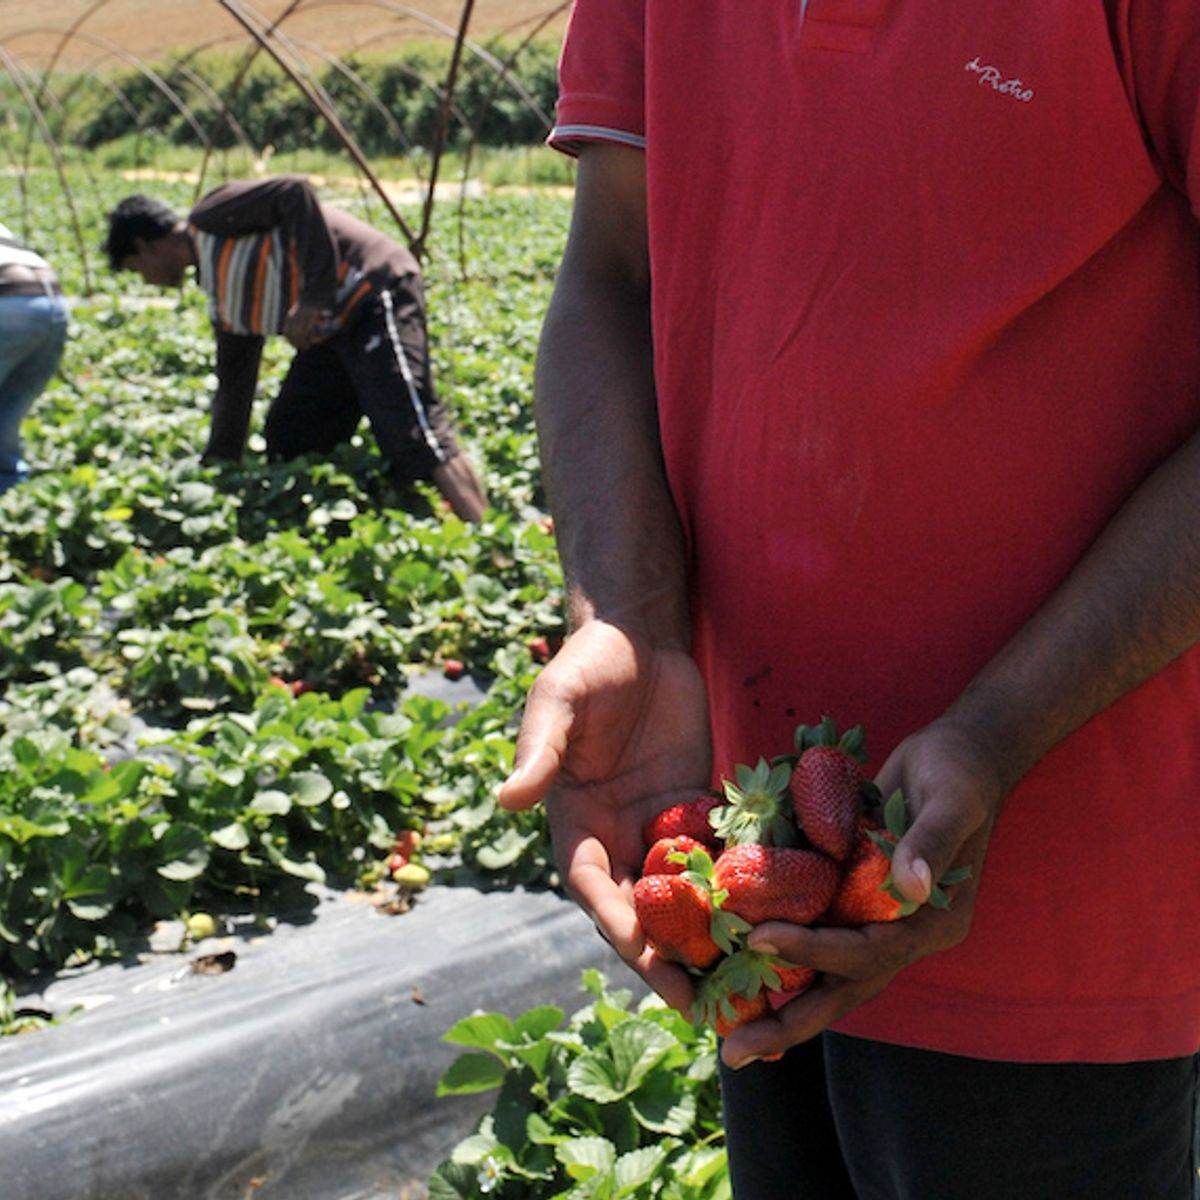 Migrant strawberry pickers face deadly risks living in flammable shacks